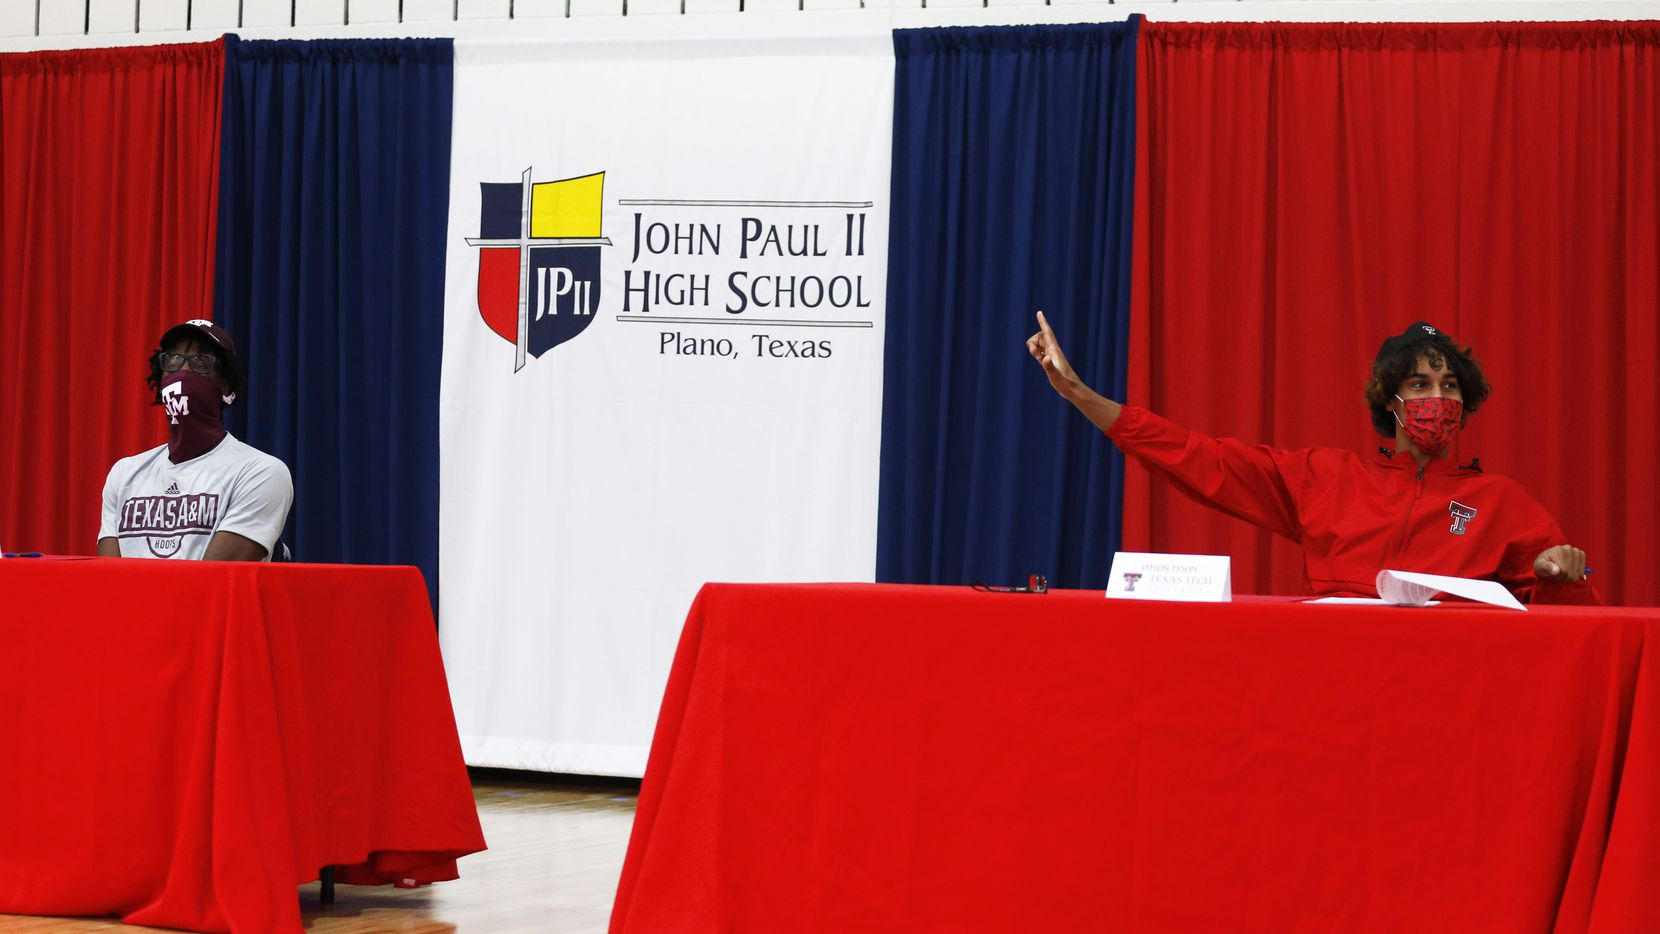 Plano John Paul II basketball players Manny Obaseki (left) and Jaylon Tyson are introduced before signing their national letters of intent on National Signing Day on Wednesday. Obaseki signed with Texas A&M, and Tyson signed with Texas Tech. (Vernon Bryant/The Dallas Morning News)